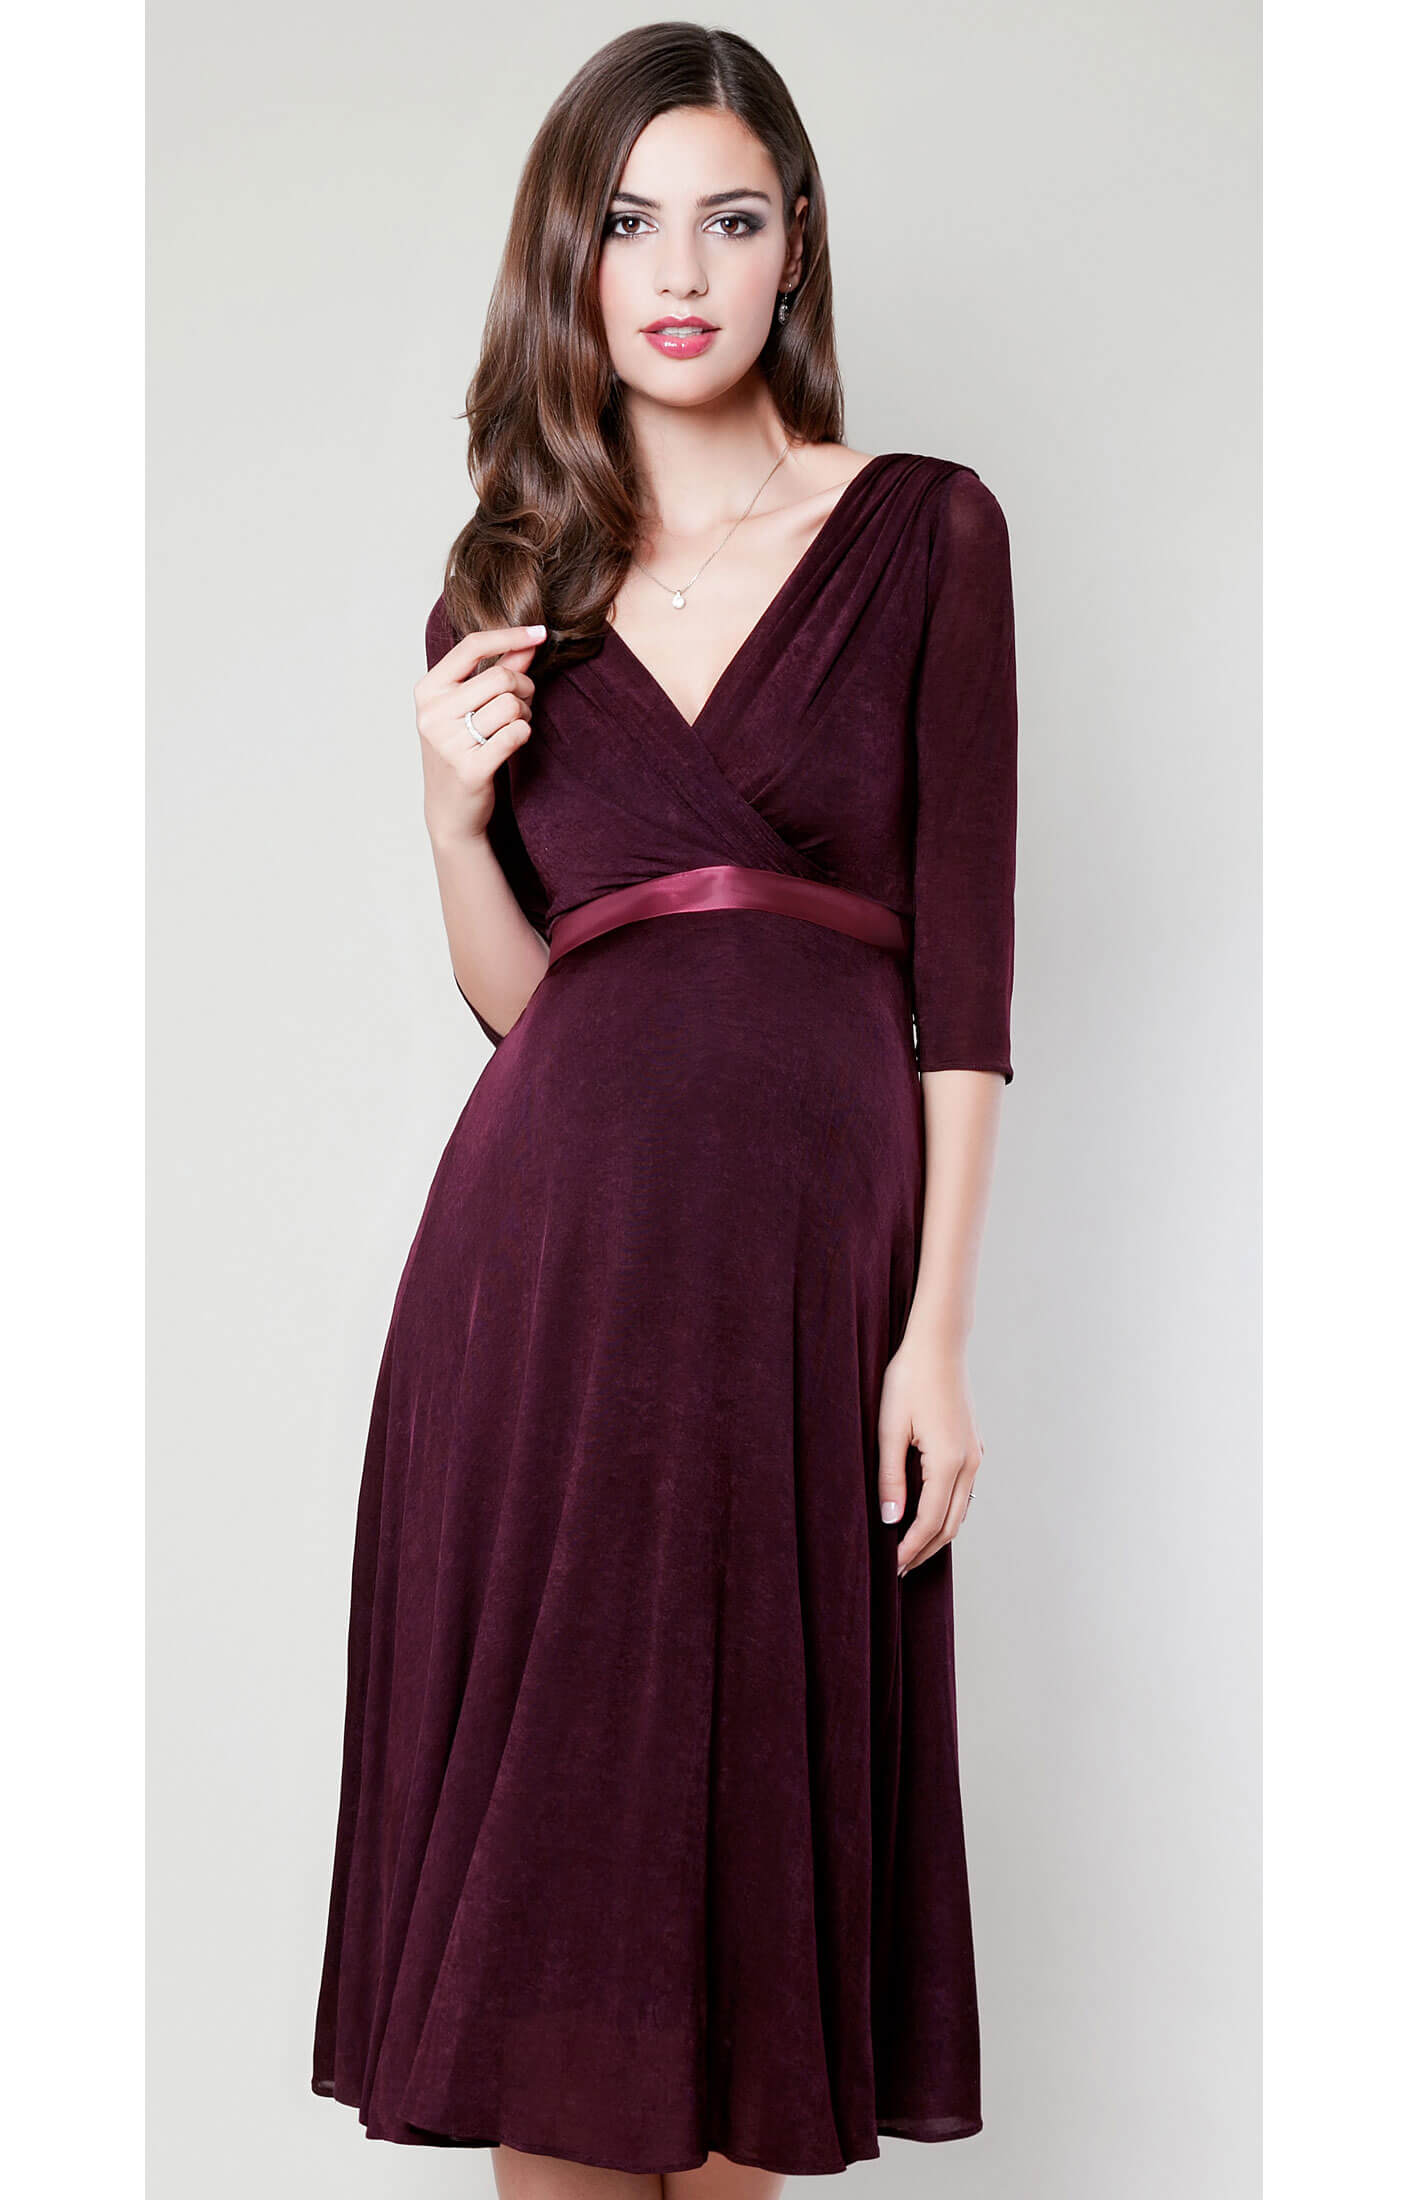 Willow maternity dress deep claret maternity wedding dresses willow maternity dress deep claret by tiffany rose ombrellifo Gallery